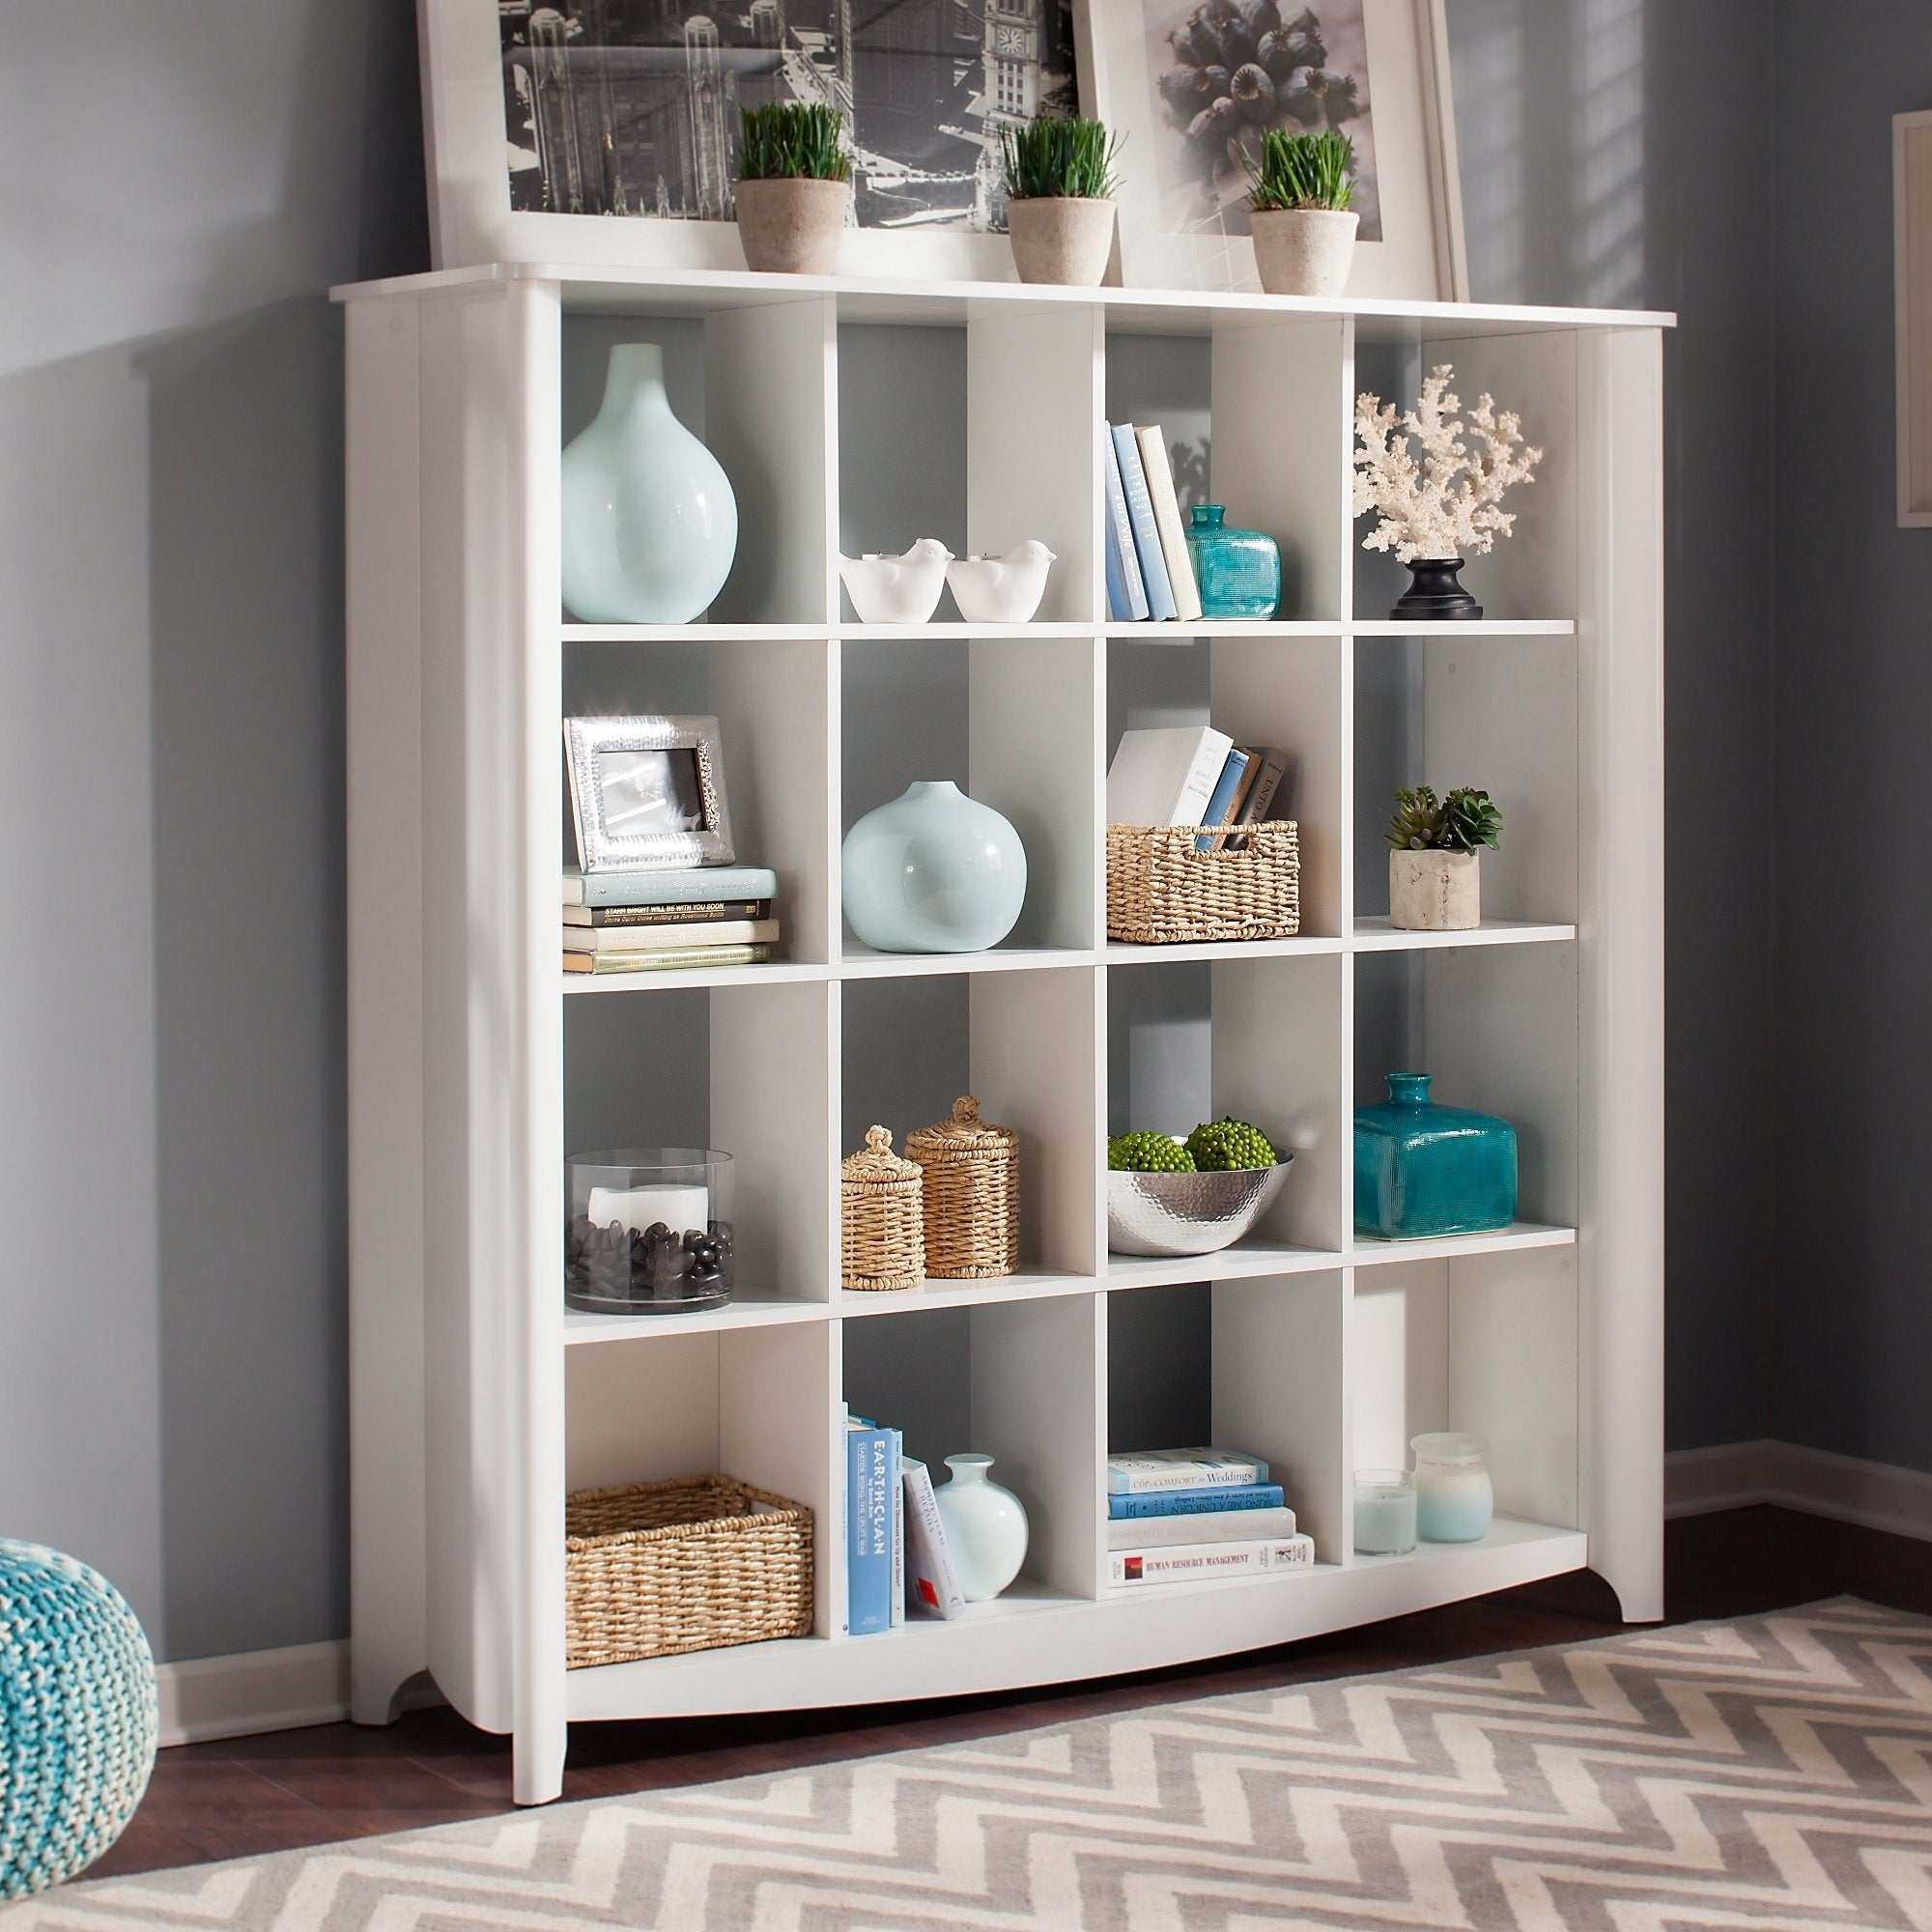 Bush Furniture Aero 16 Cube Bookcase/Room Divider - Free Shipping Today -  Overstock.com - 15565471